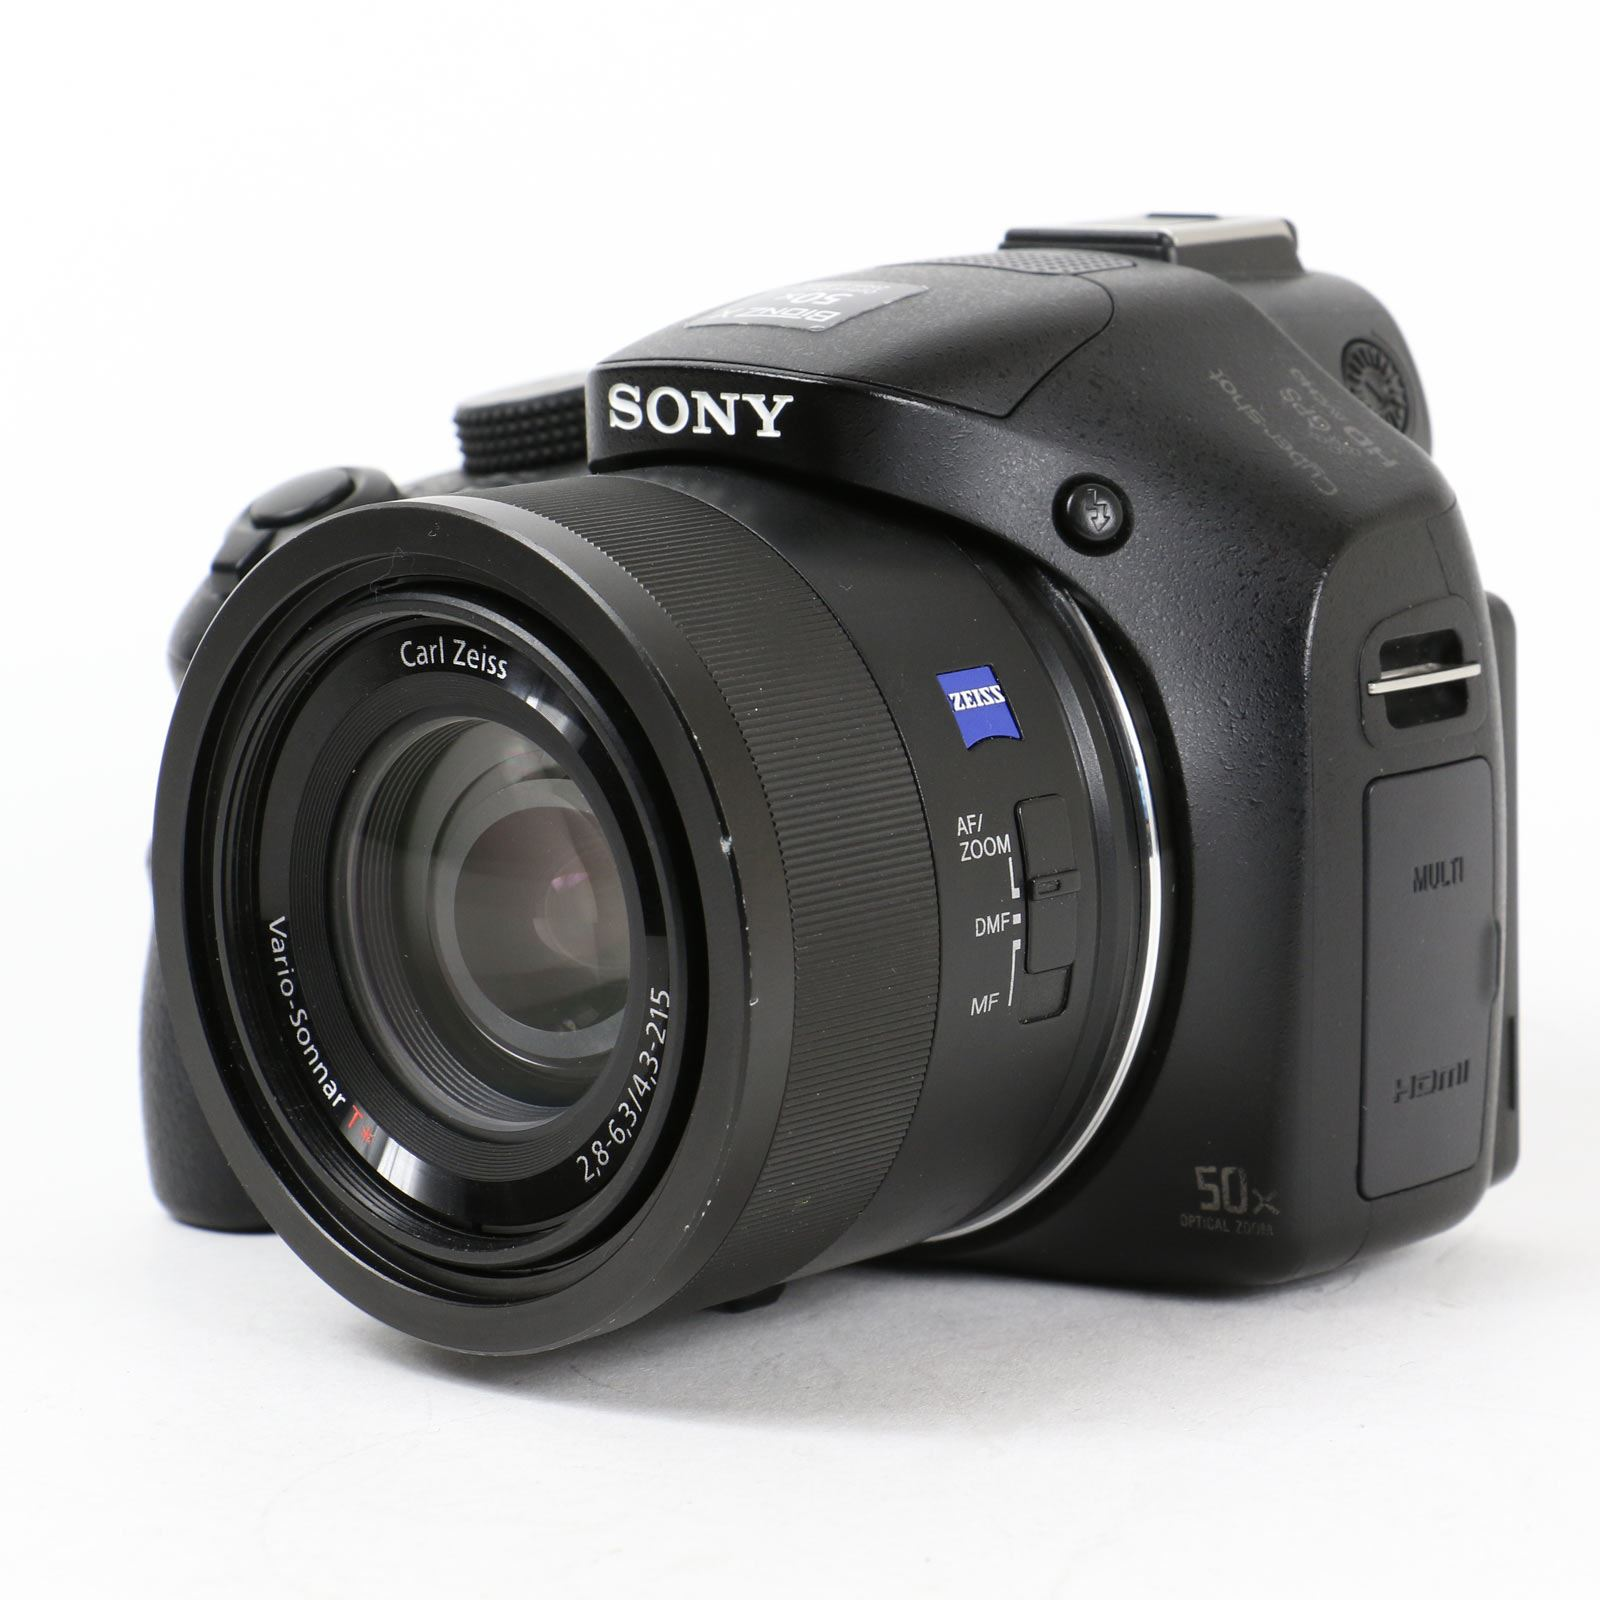 Image of Used Sony Cyber-shot HX400V Digital Camera